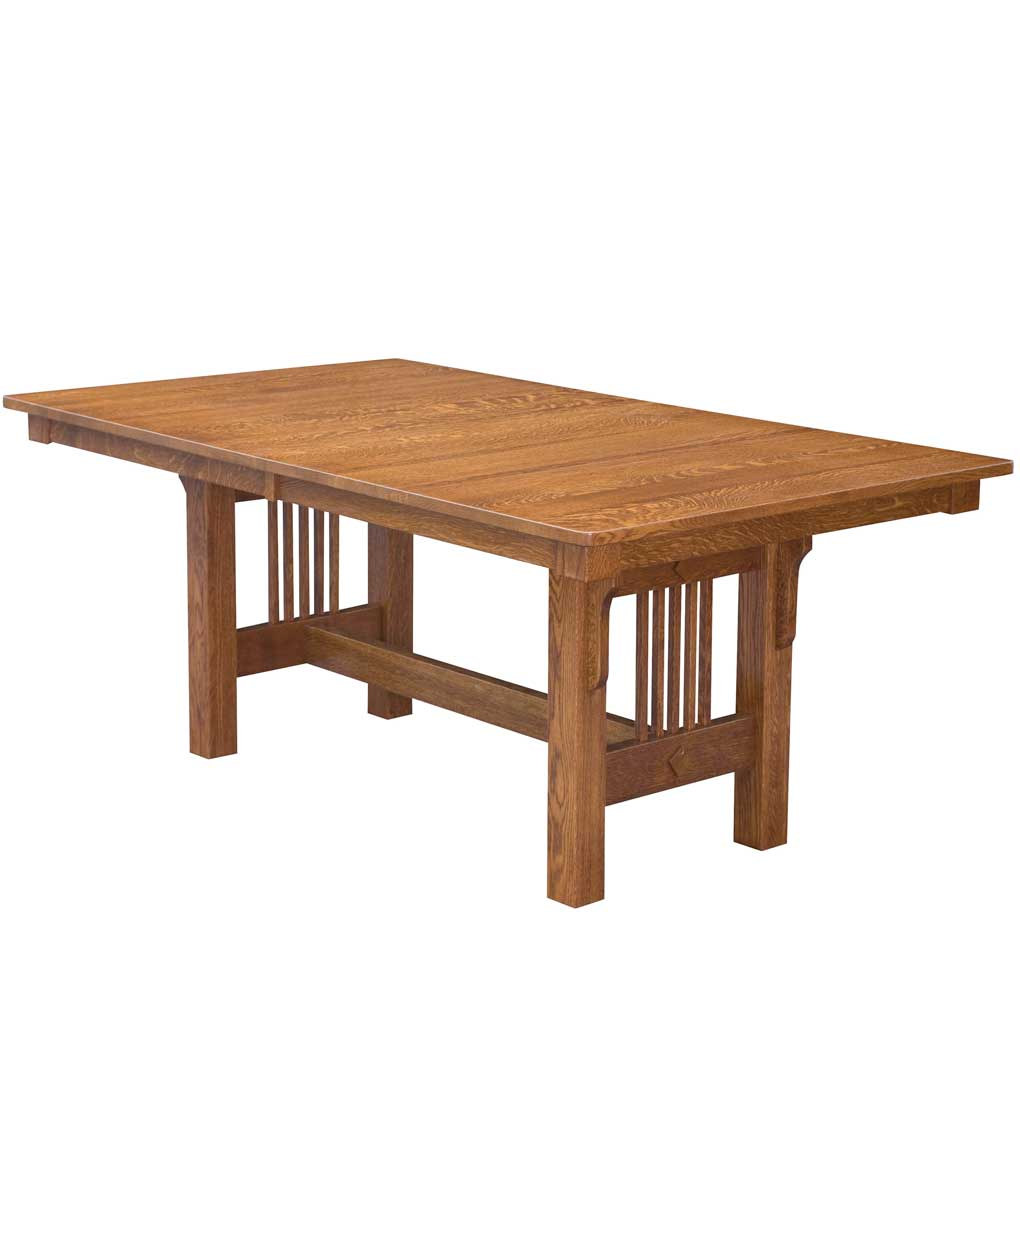 Trestle mission dining table amish direct furniture for Mission style dining table